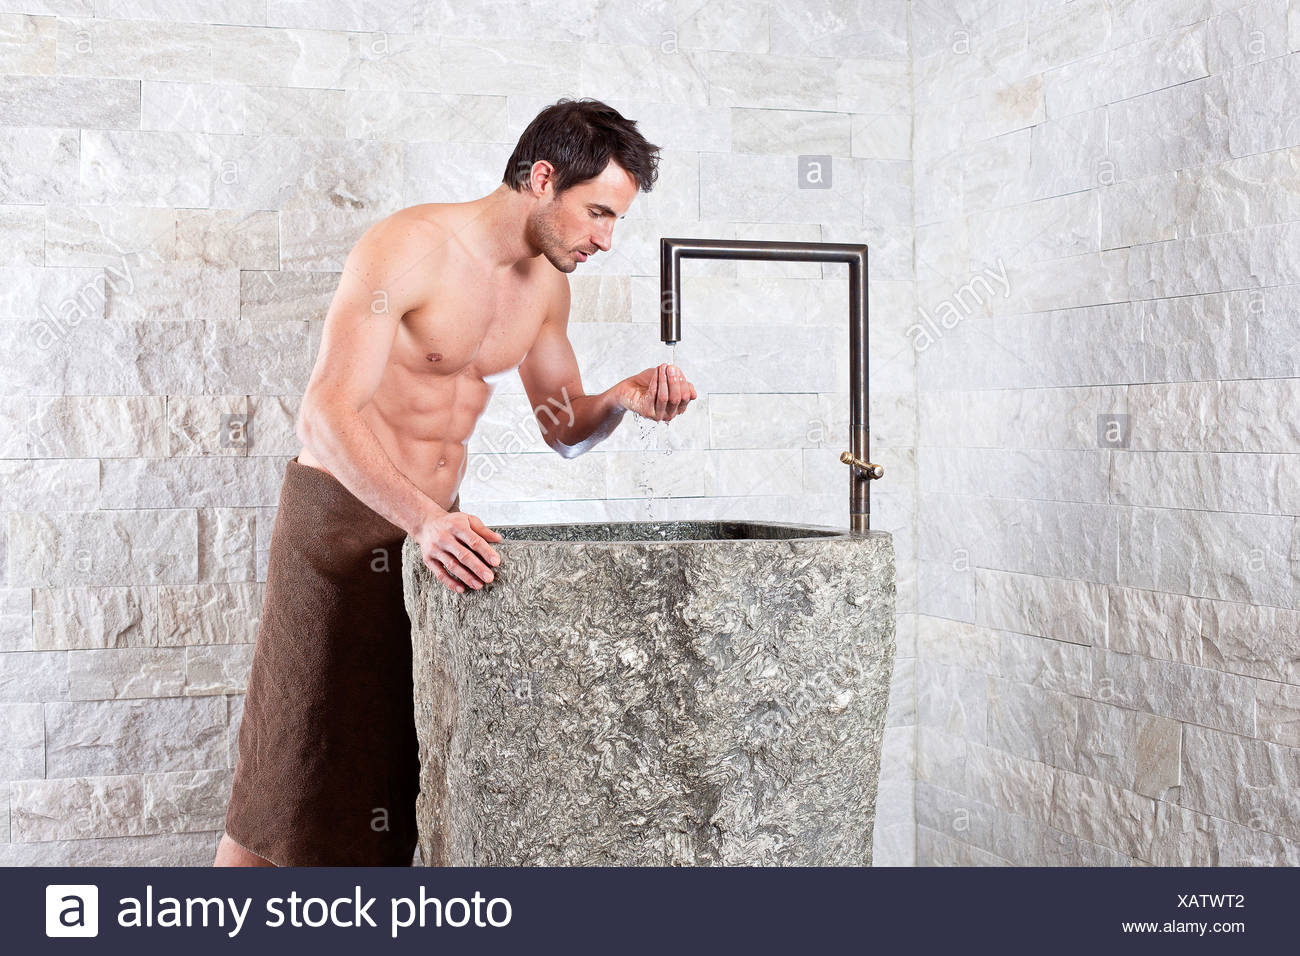 Bare-chested man standing at a water fountain in a spa complex - Stock Image